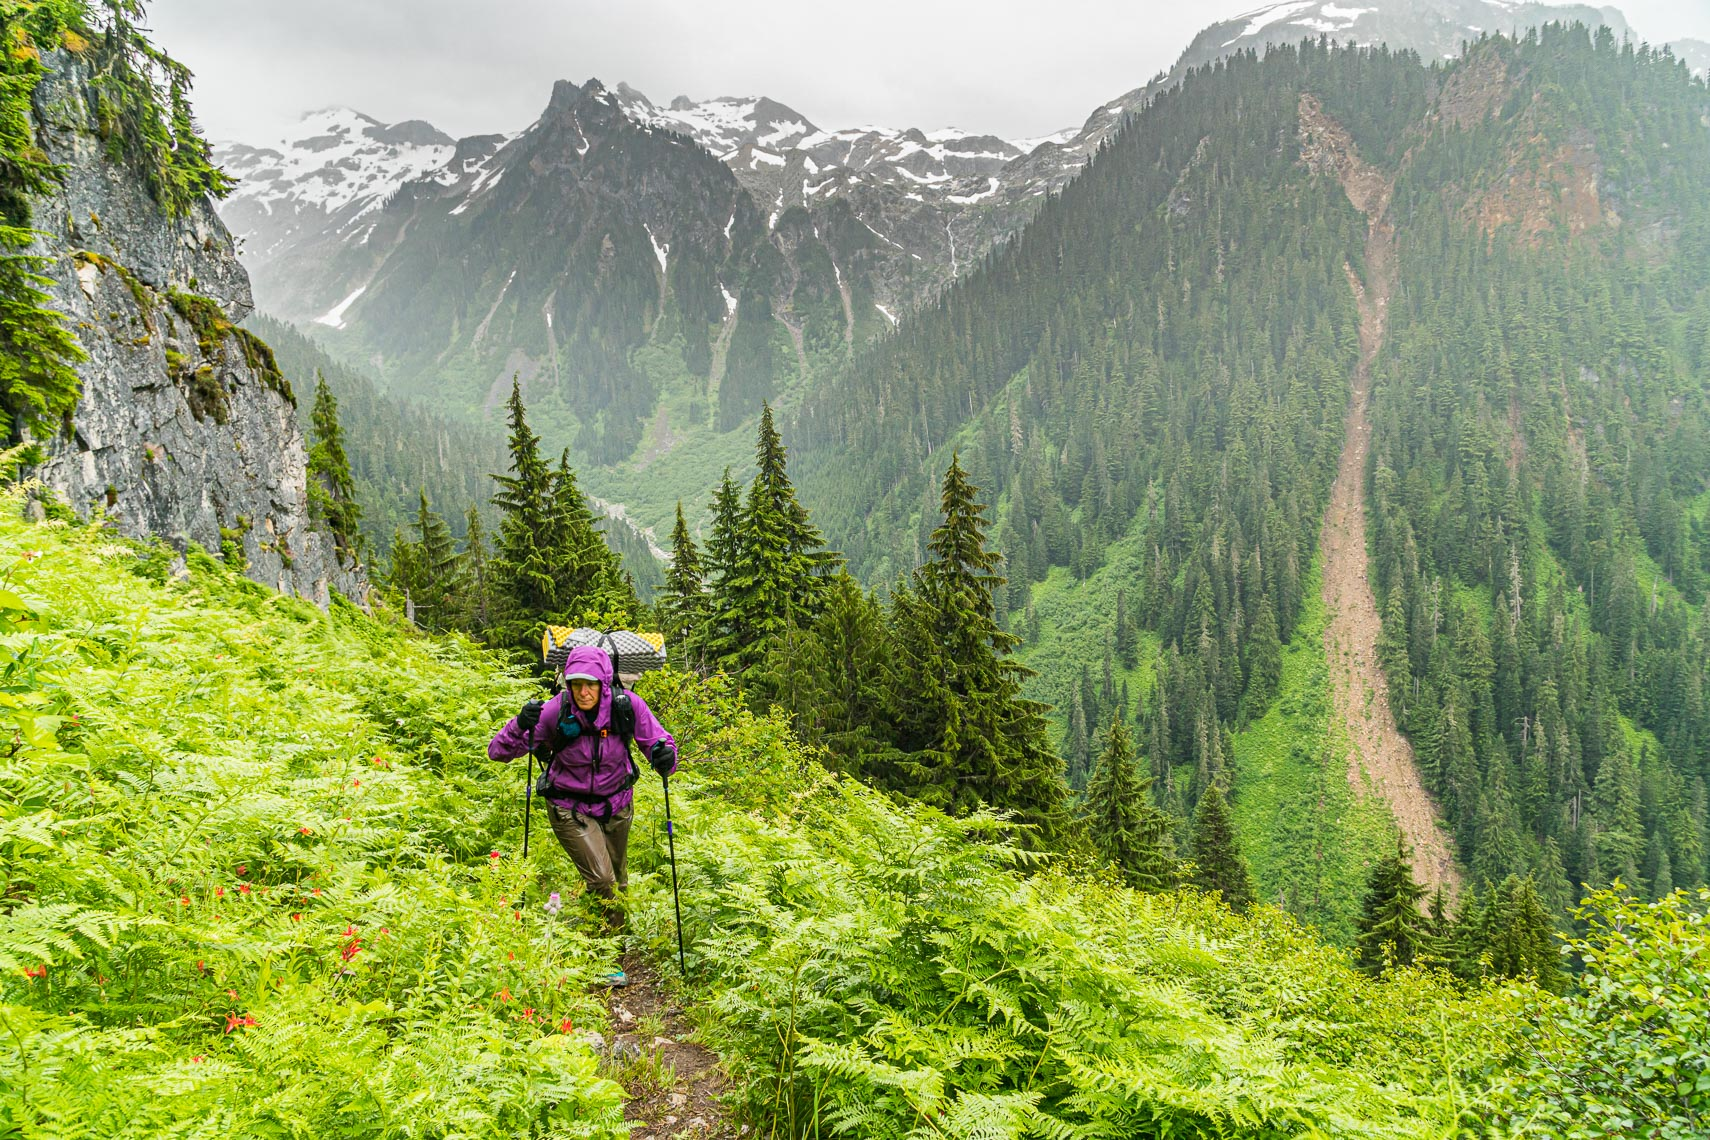 Hike in Washington Rain Adventure Photographer Michael DeYoung